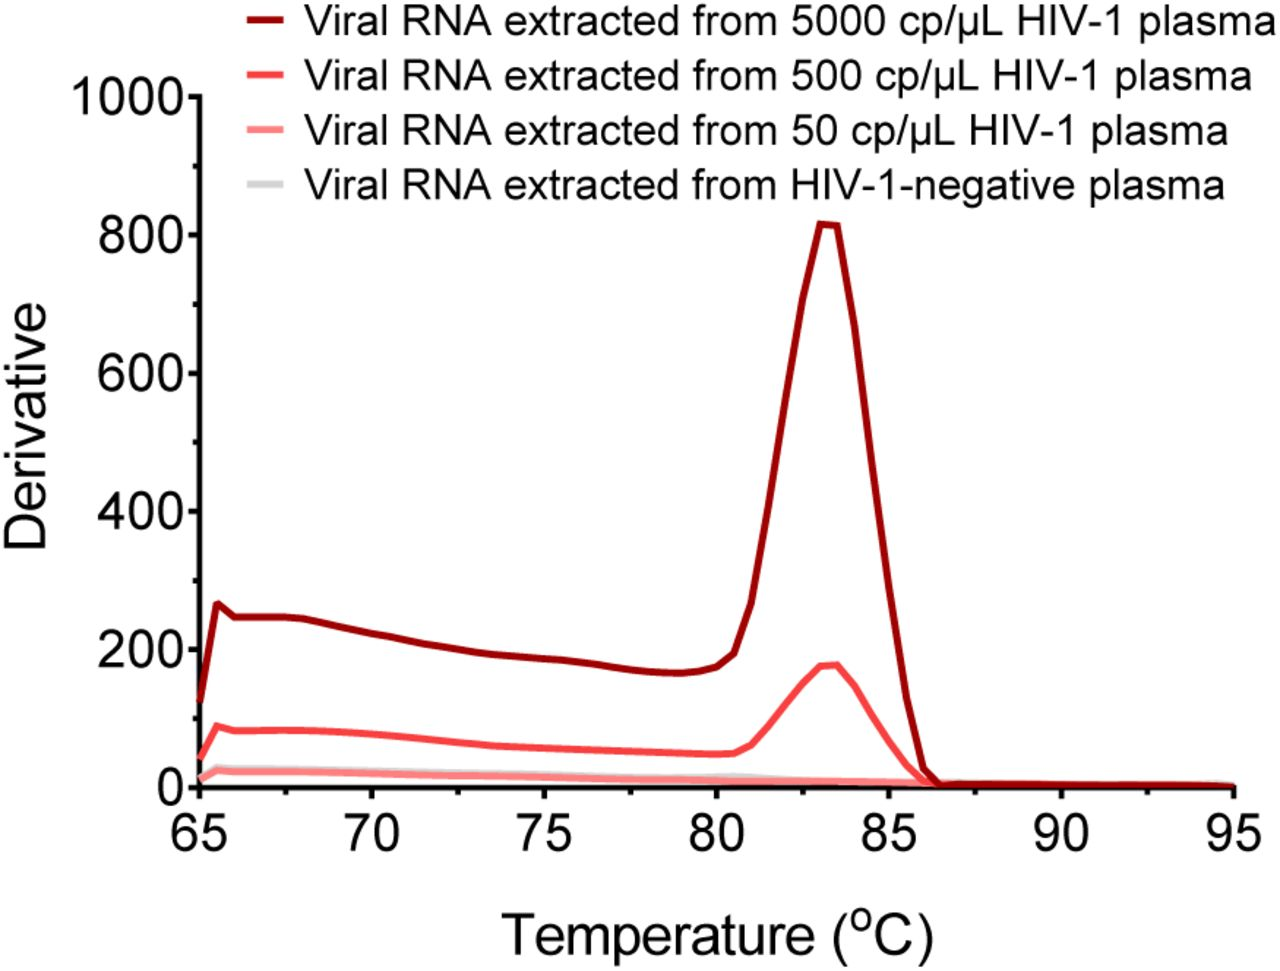 The melting curves for the OneStep RT-PCR products on detecting viral RNA extracted from various copies per microliter of HIV-1 plasma. The melting temperature of the products was about 83.5 °C.